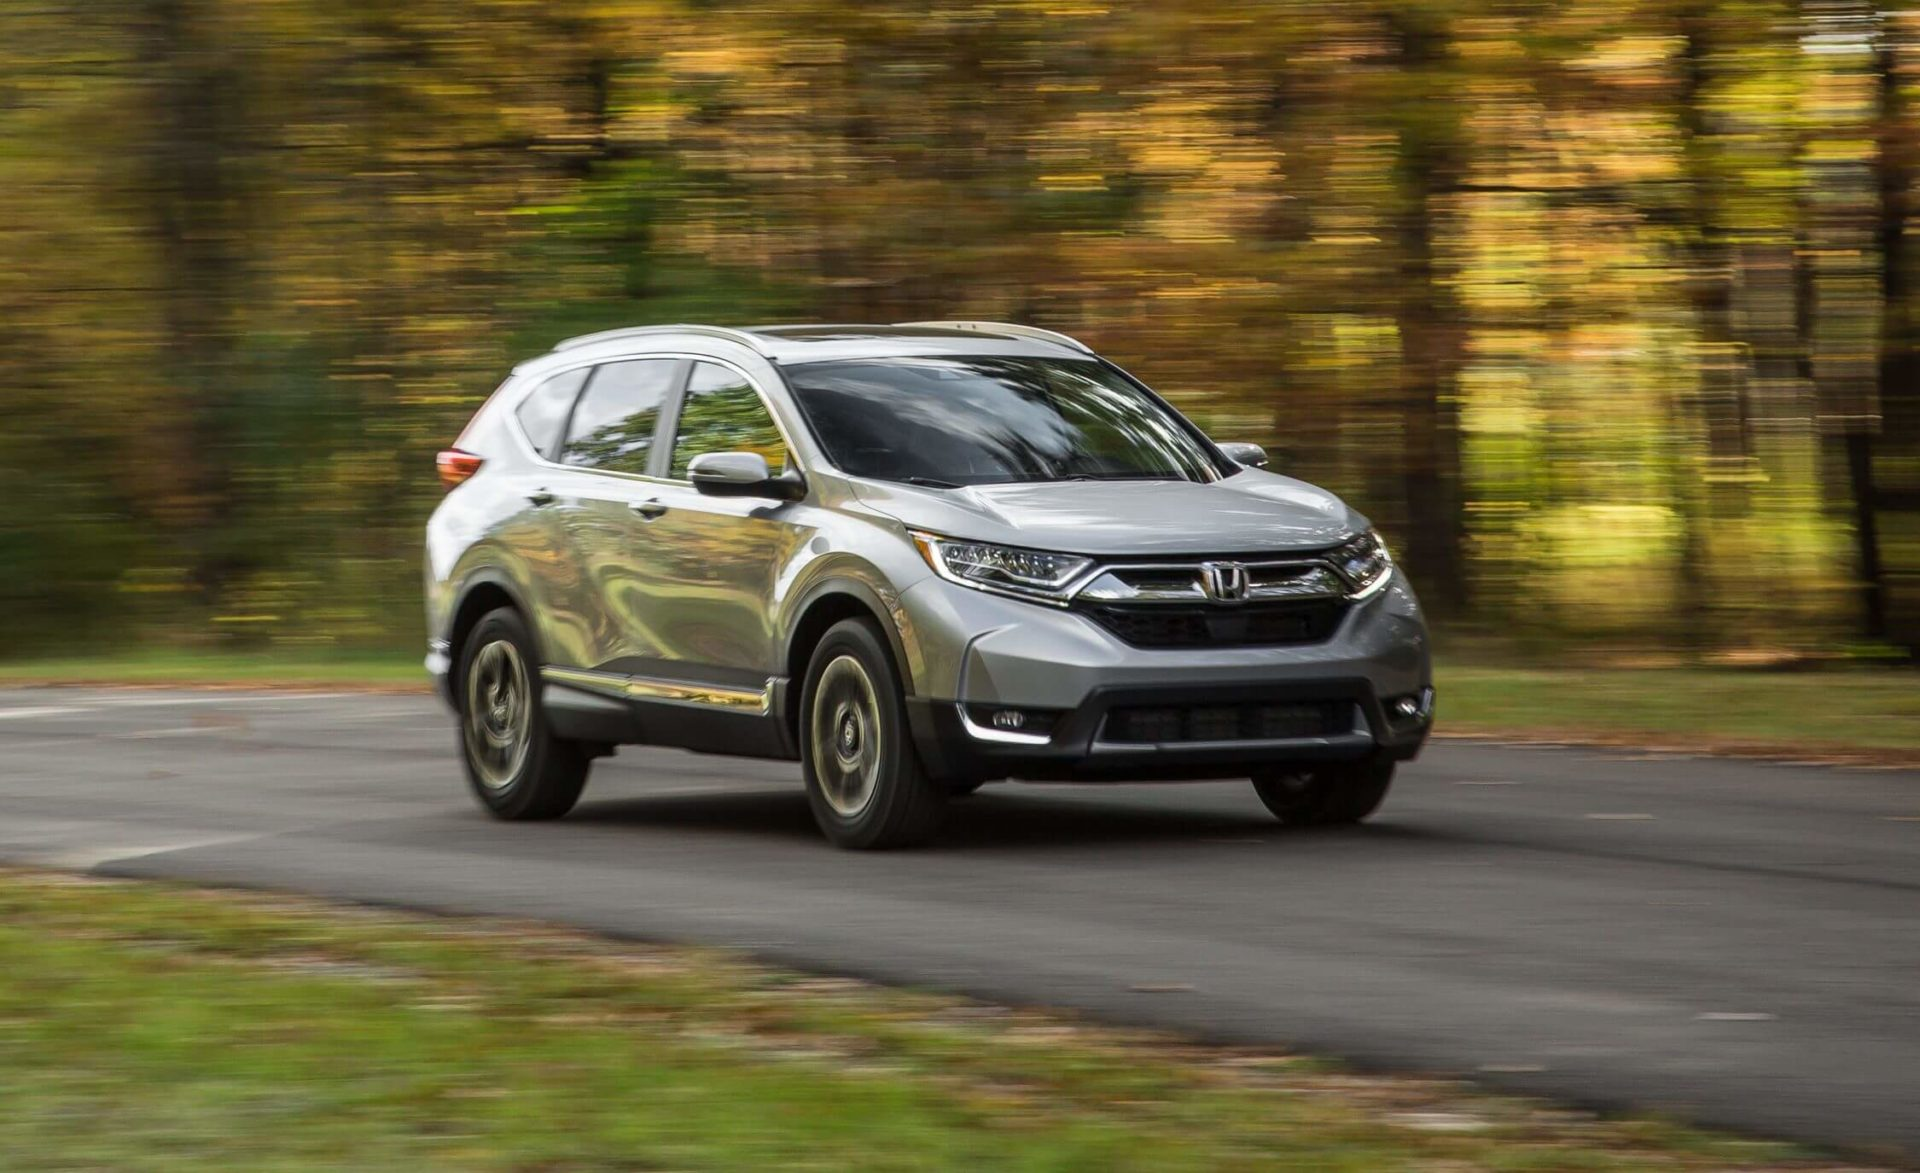 ... Excellent Honda CRV Gas Mileage, As Well As The Overall Safety And Ease  With Which The CRV Can Be Driven. It Routinely Comes Up Among The Most  Desired ...